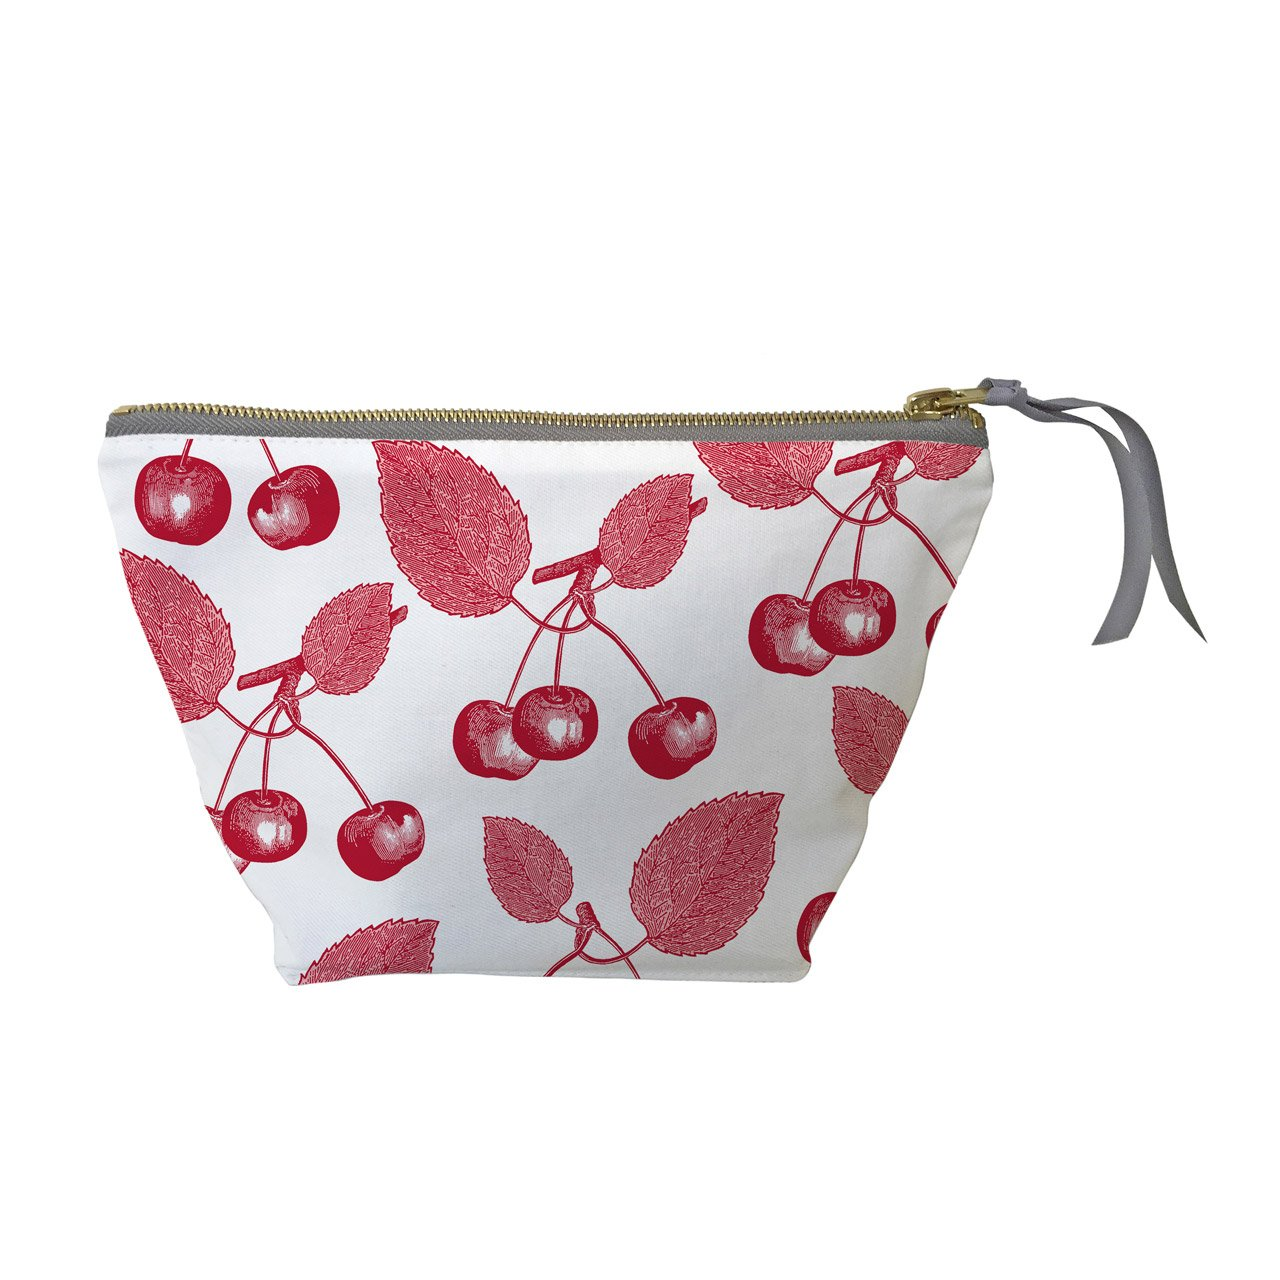 Cosmetic Bag - Cherry, Red  &  Pink